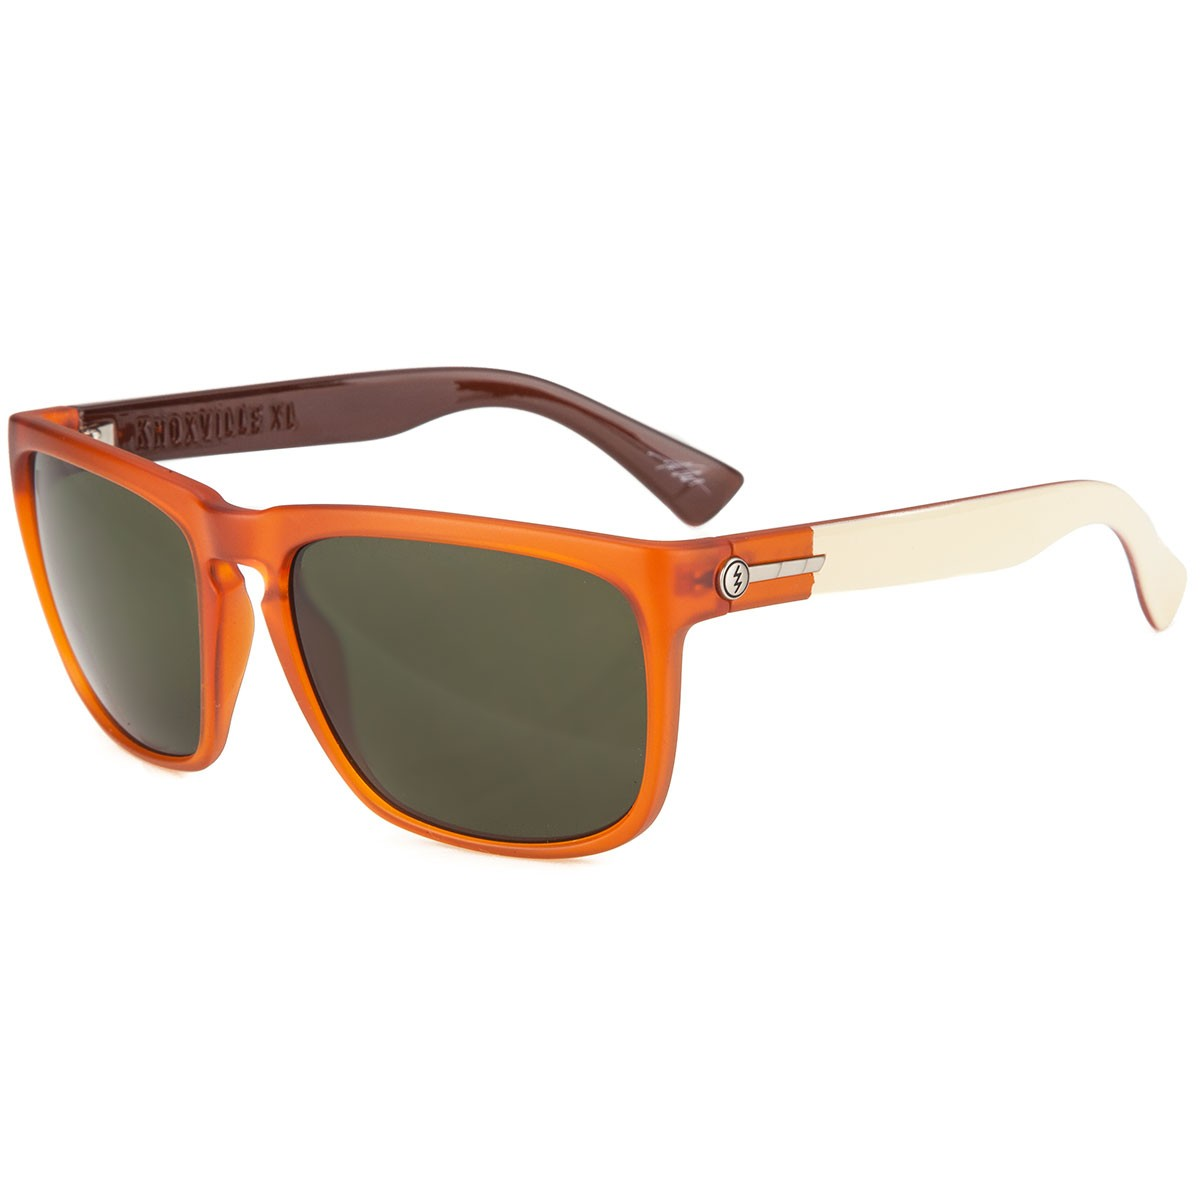 Electric Sunglasses Knoxville  knoxville xl sunglasses orange glass melanin grey